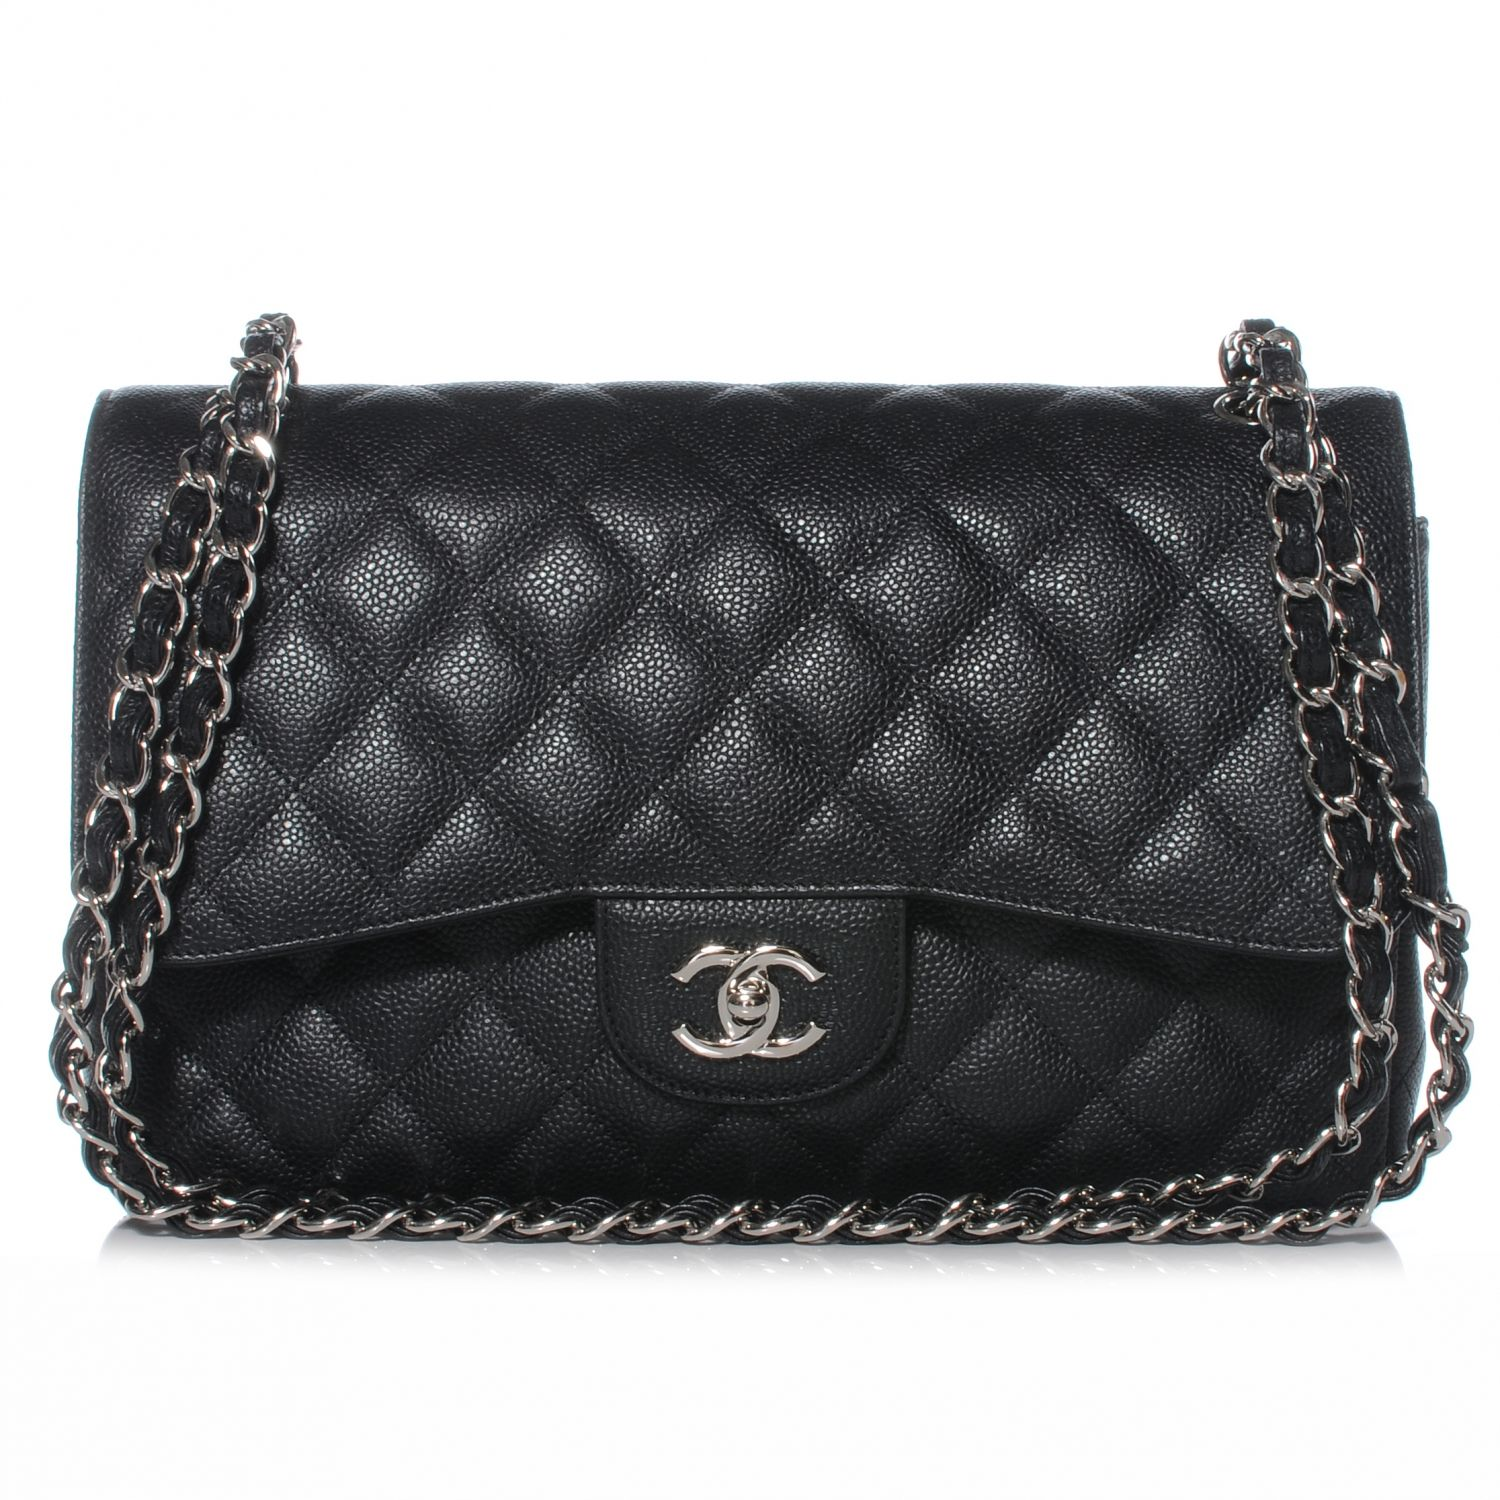 chanel black quilted caviar classic jumbo 255 double flap